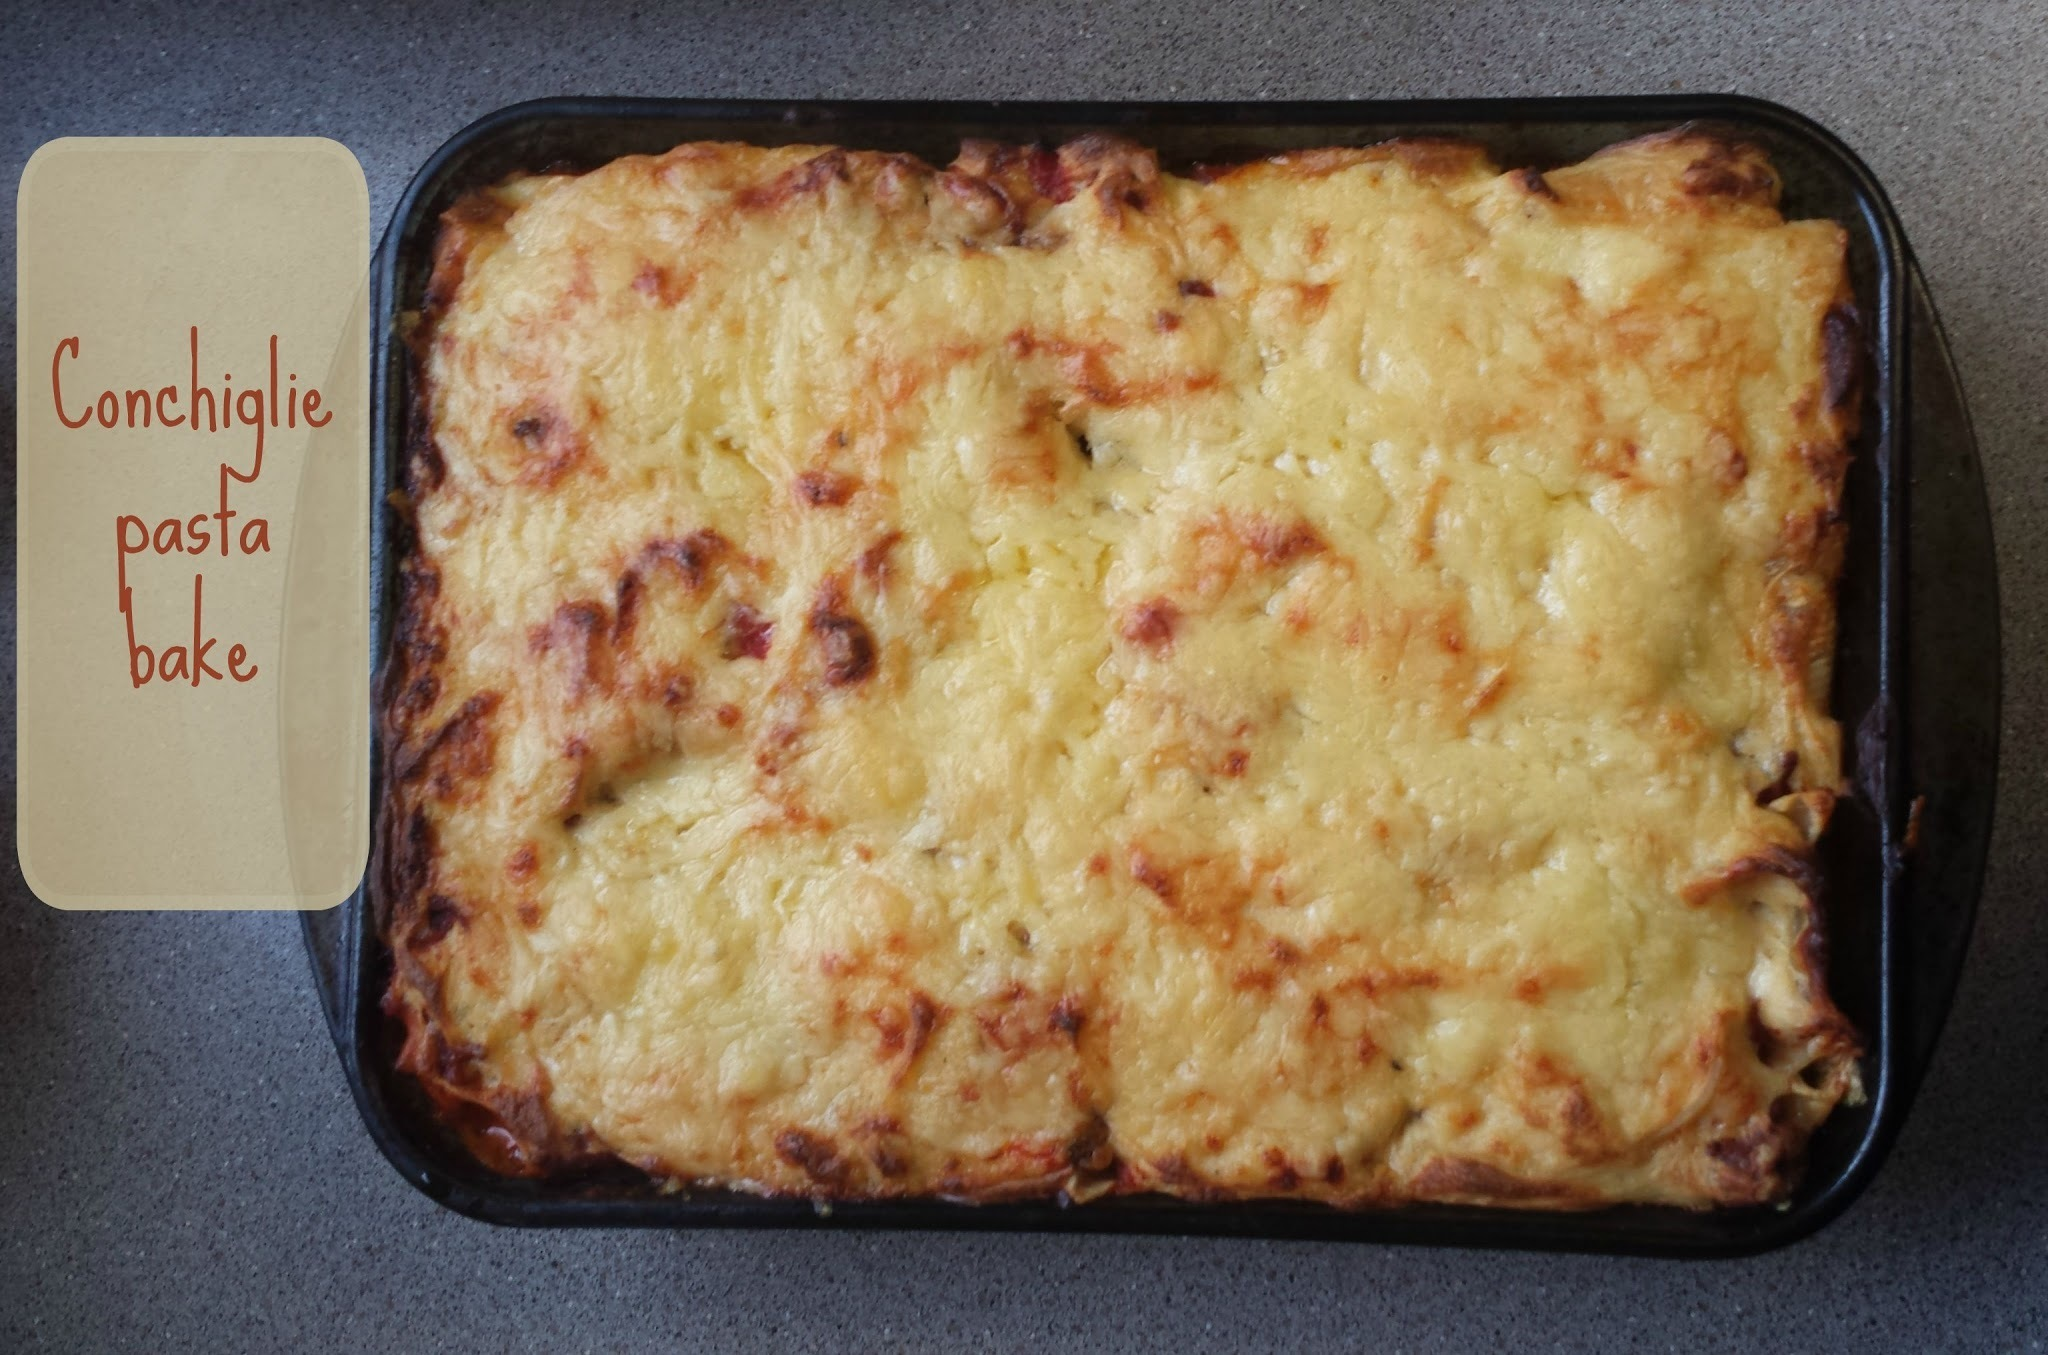 Recipe - Conchiglie pasta bake (#SlimmingWorld friendly)